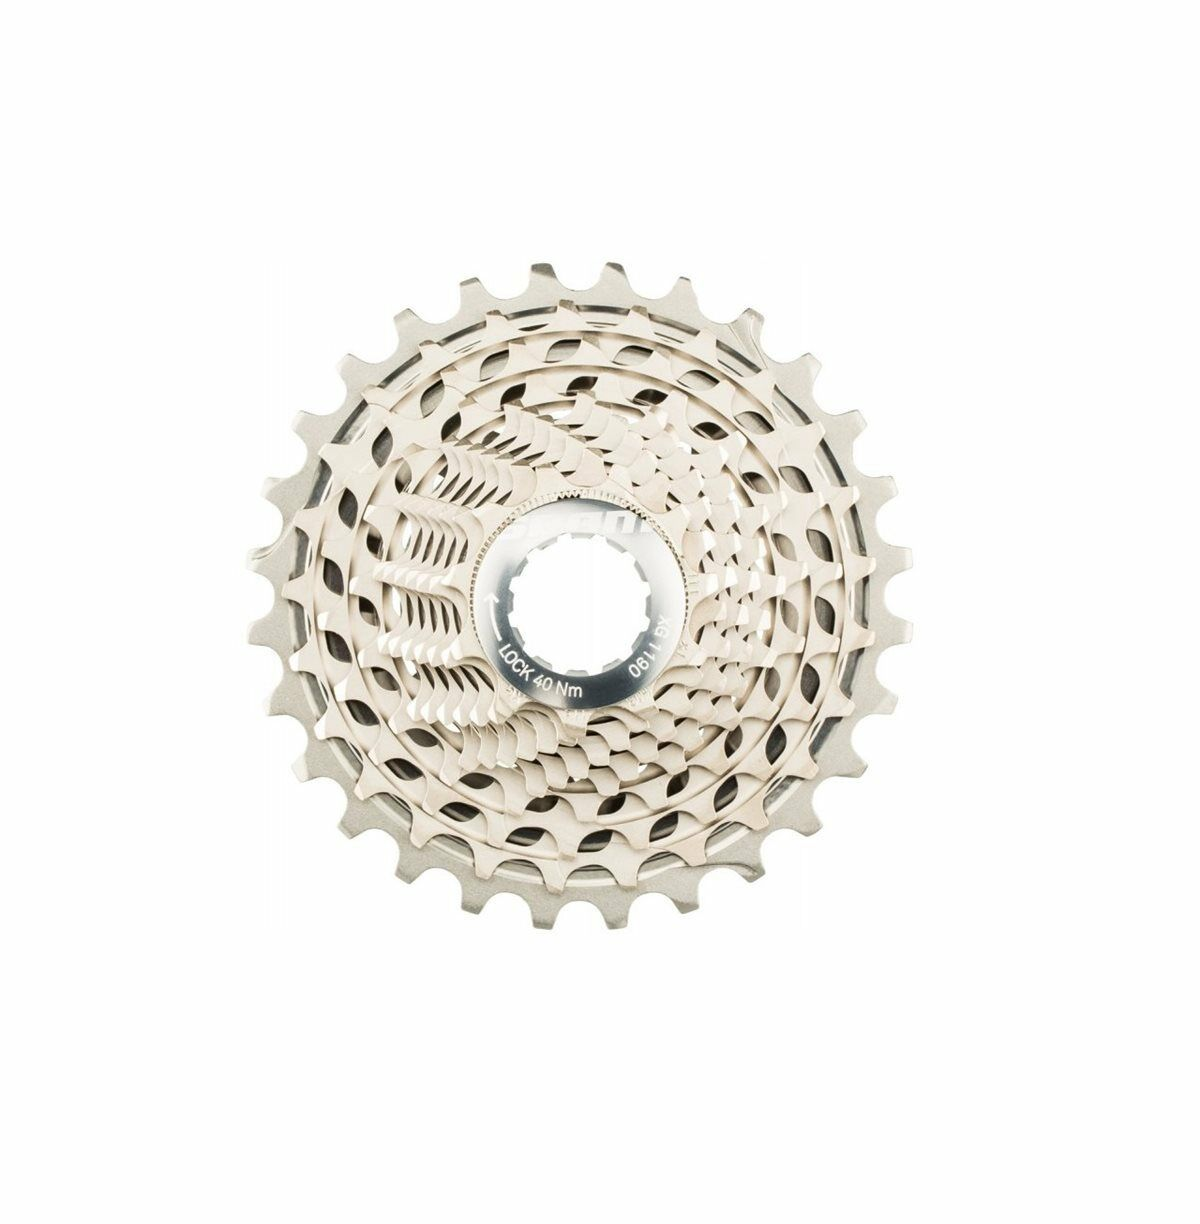 SRAM cassette pinions Red 22 XG-1190 X-Dome 11-30T 11 speed Cassette pinions